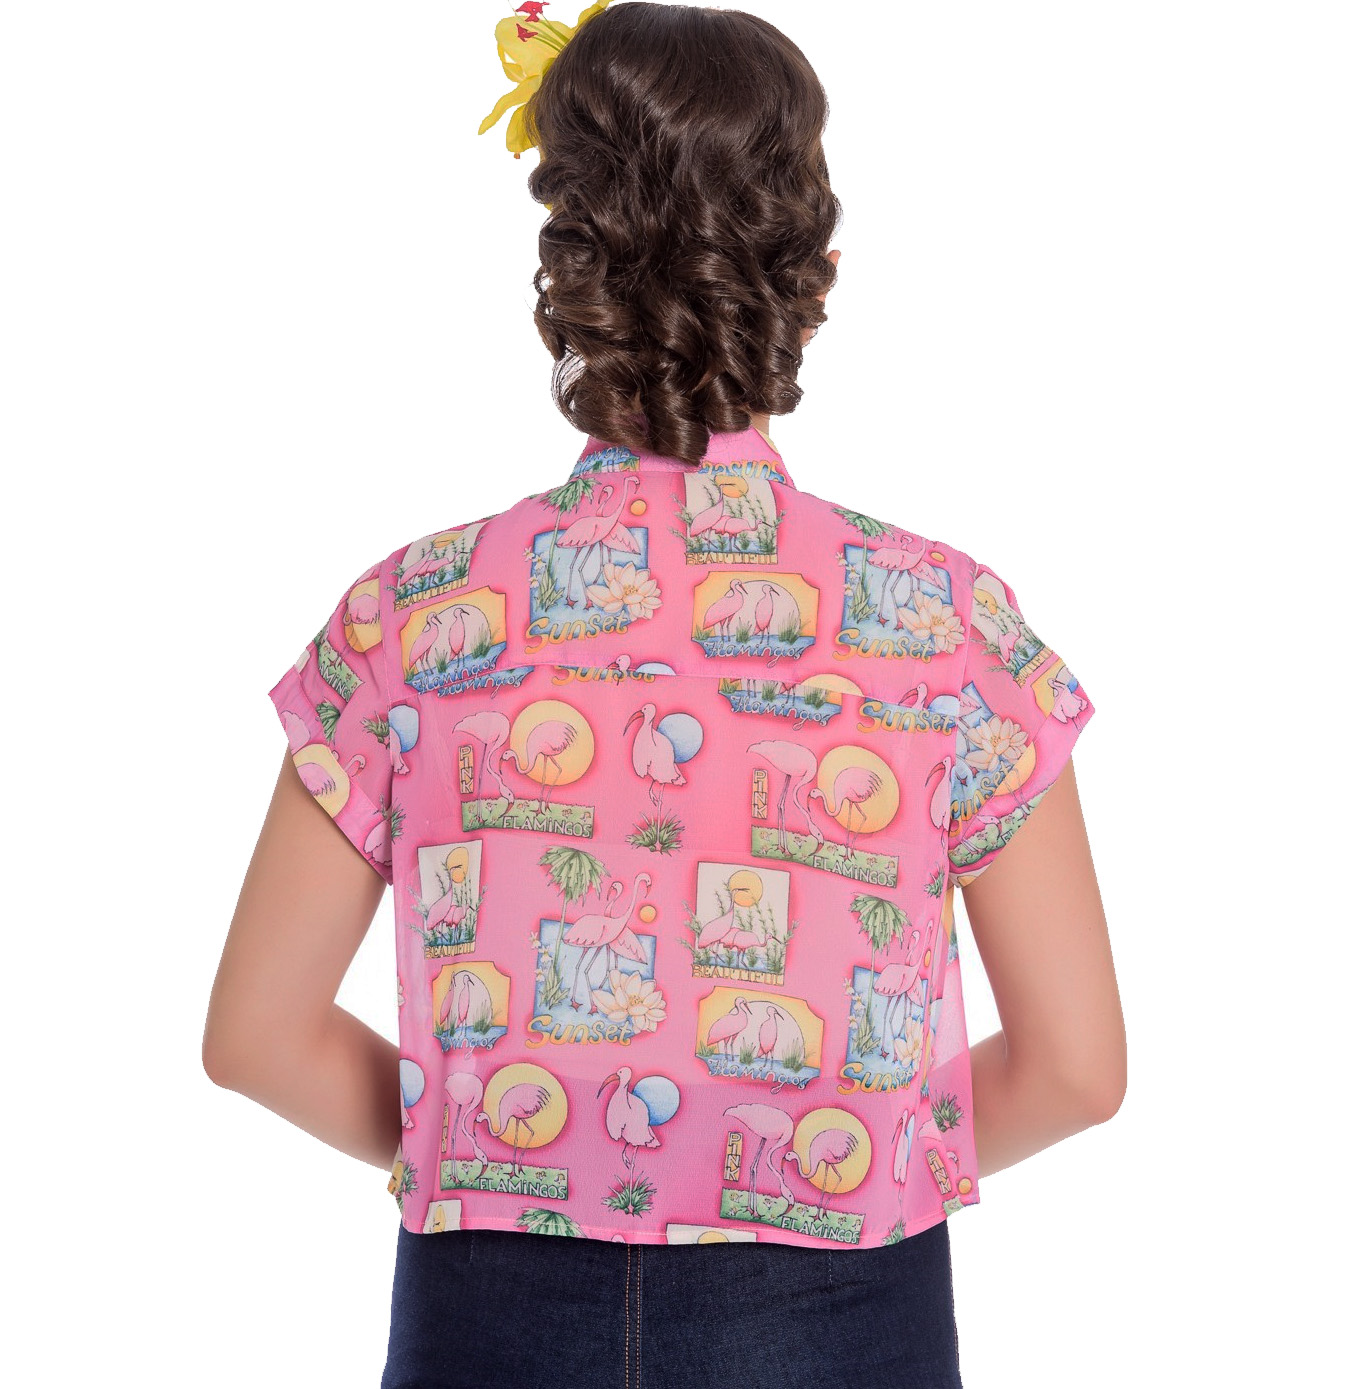 thumbnail 16 - Hell Bunny 50s Retro Top Pink Flamingo MAXINE Cropped Blouse Shirt All Sizes